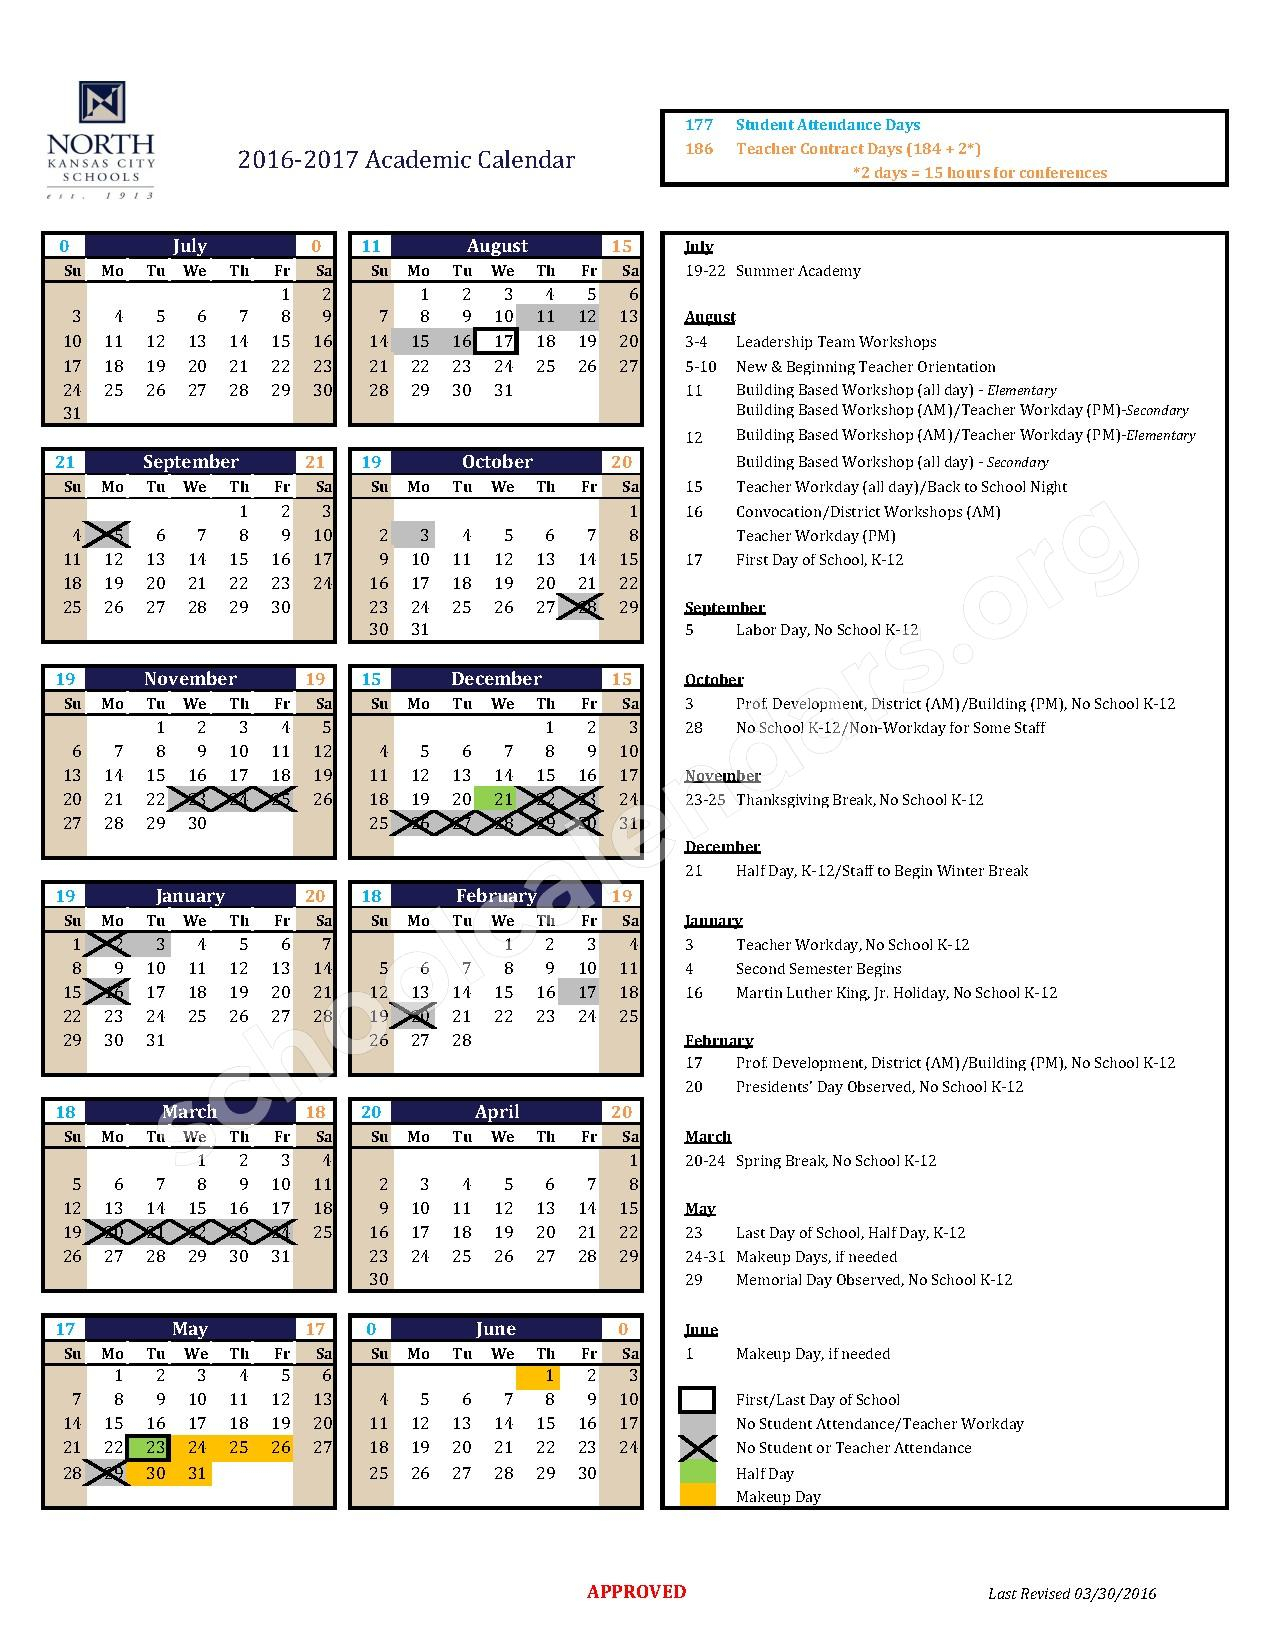 Delaware State University Calendar 2021 | Printable Throughout Uri Academic Calendar